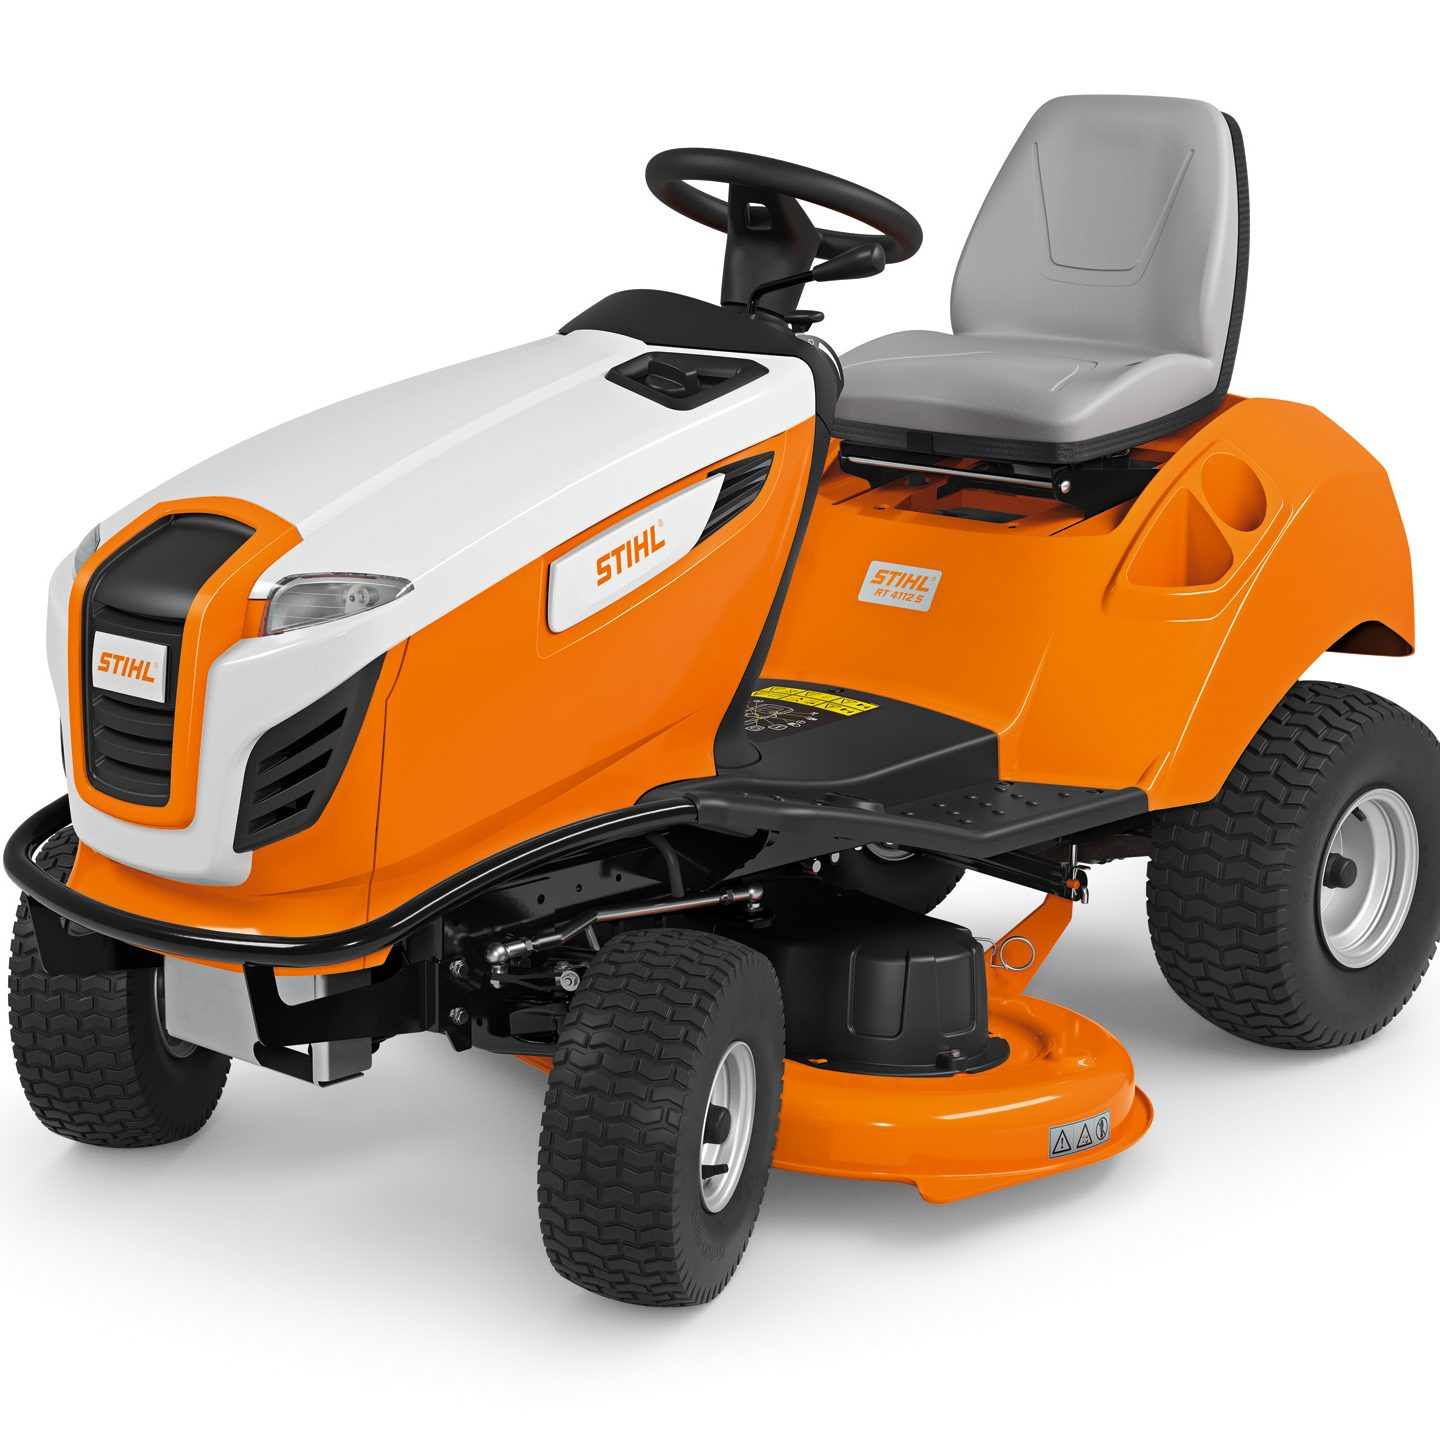 RT 4112 S - COMPACT SIDE DISCHARGE LAWN TRACTOR WITH WIDE